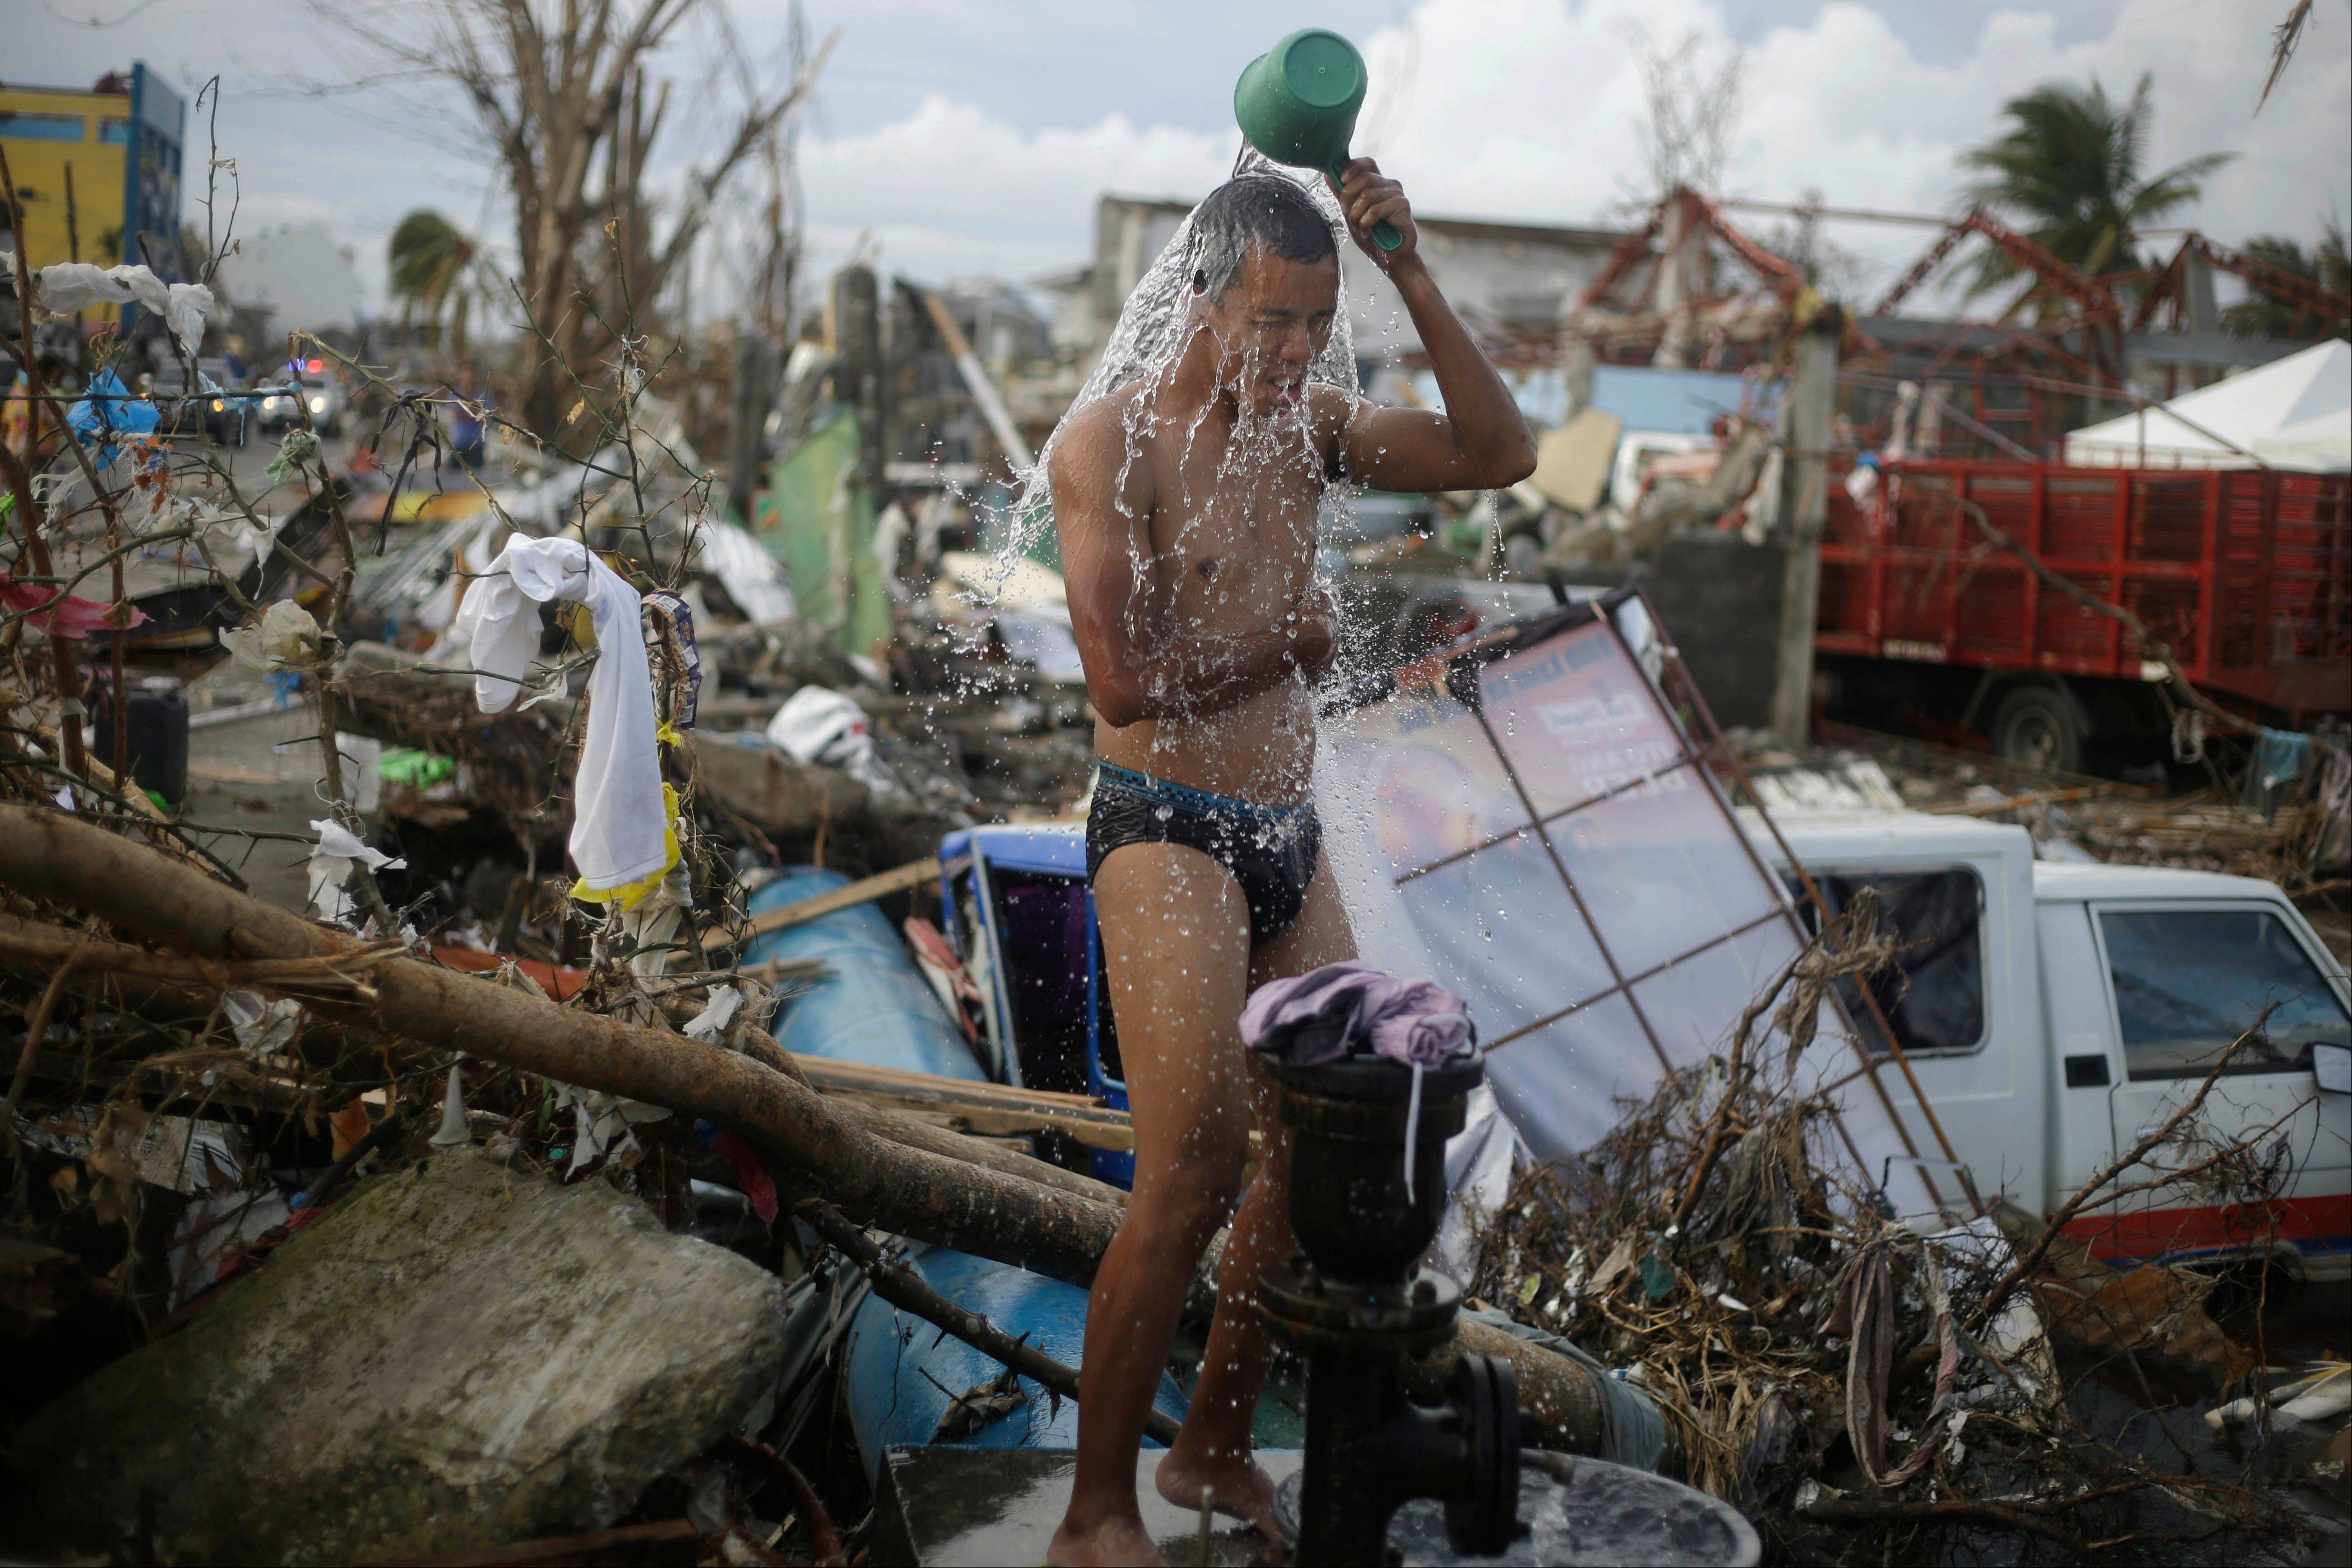 A man takes a shower amid rubble in an area badly affected by Typhoon Haiyan in Tacloban, central Philippines, Wednesday, Nov. 13, 2013. Typhoon Haiyan, one of the strongest storms on record, slammed into six central Philippine islands on Friday, leaving a wide swath of destruction.